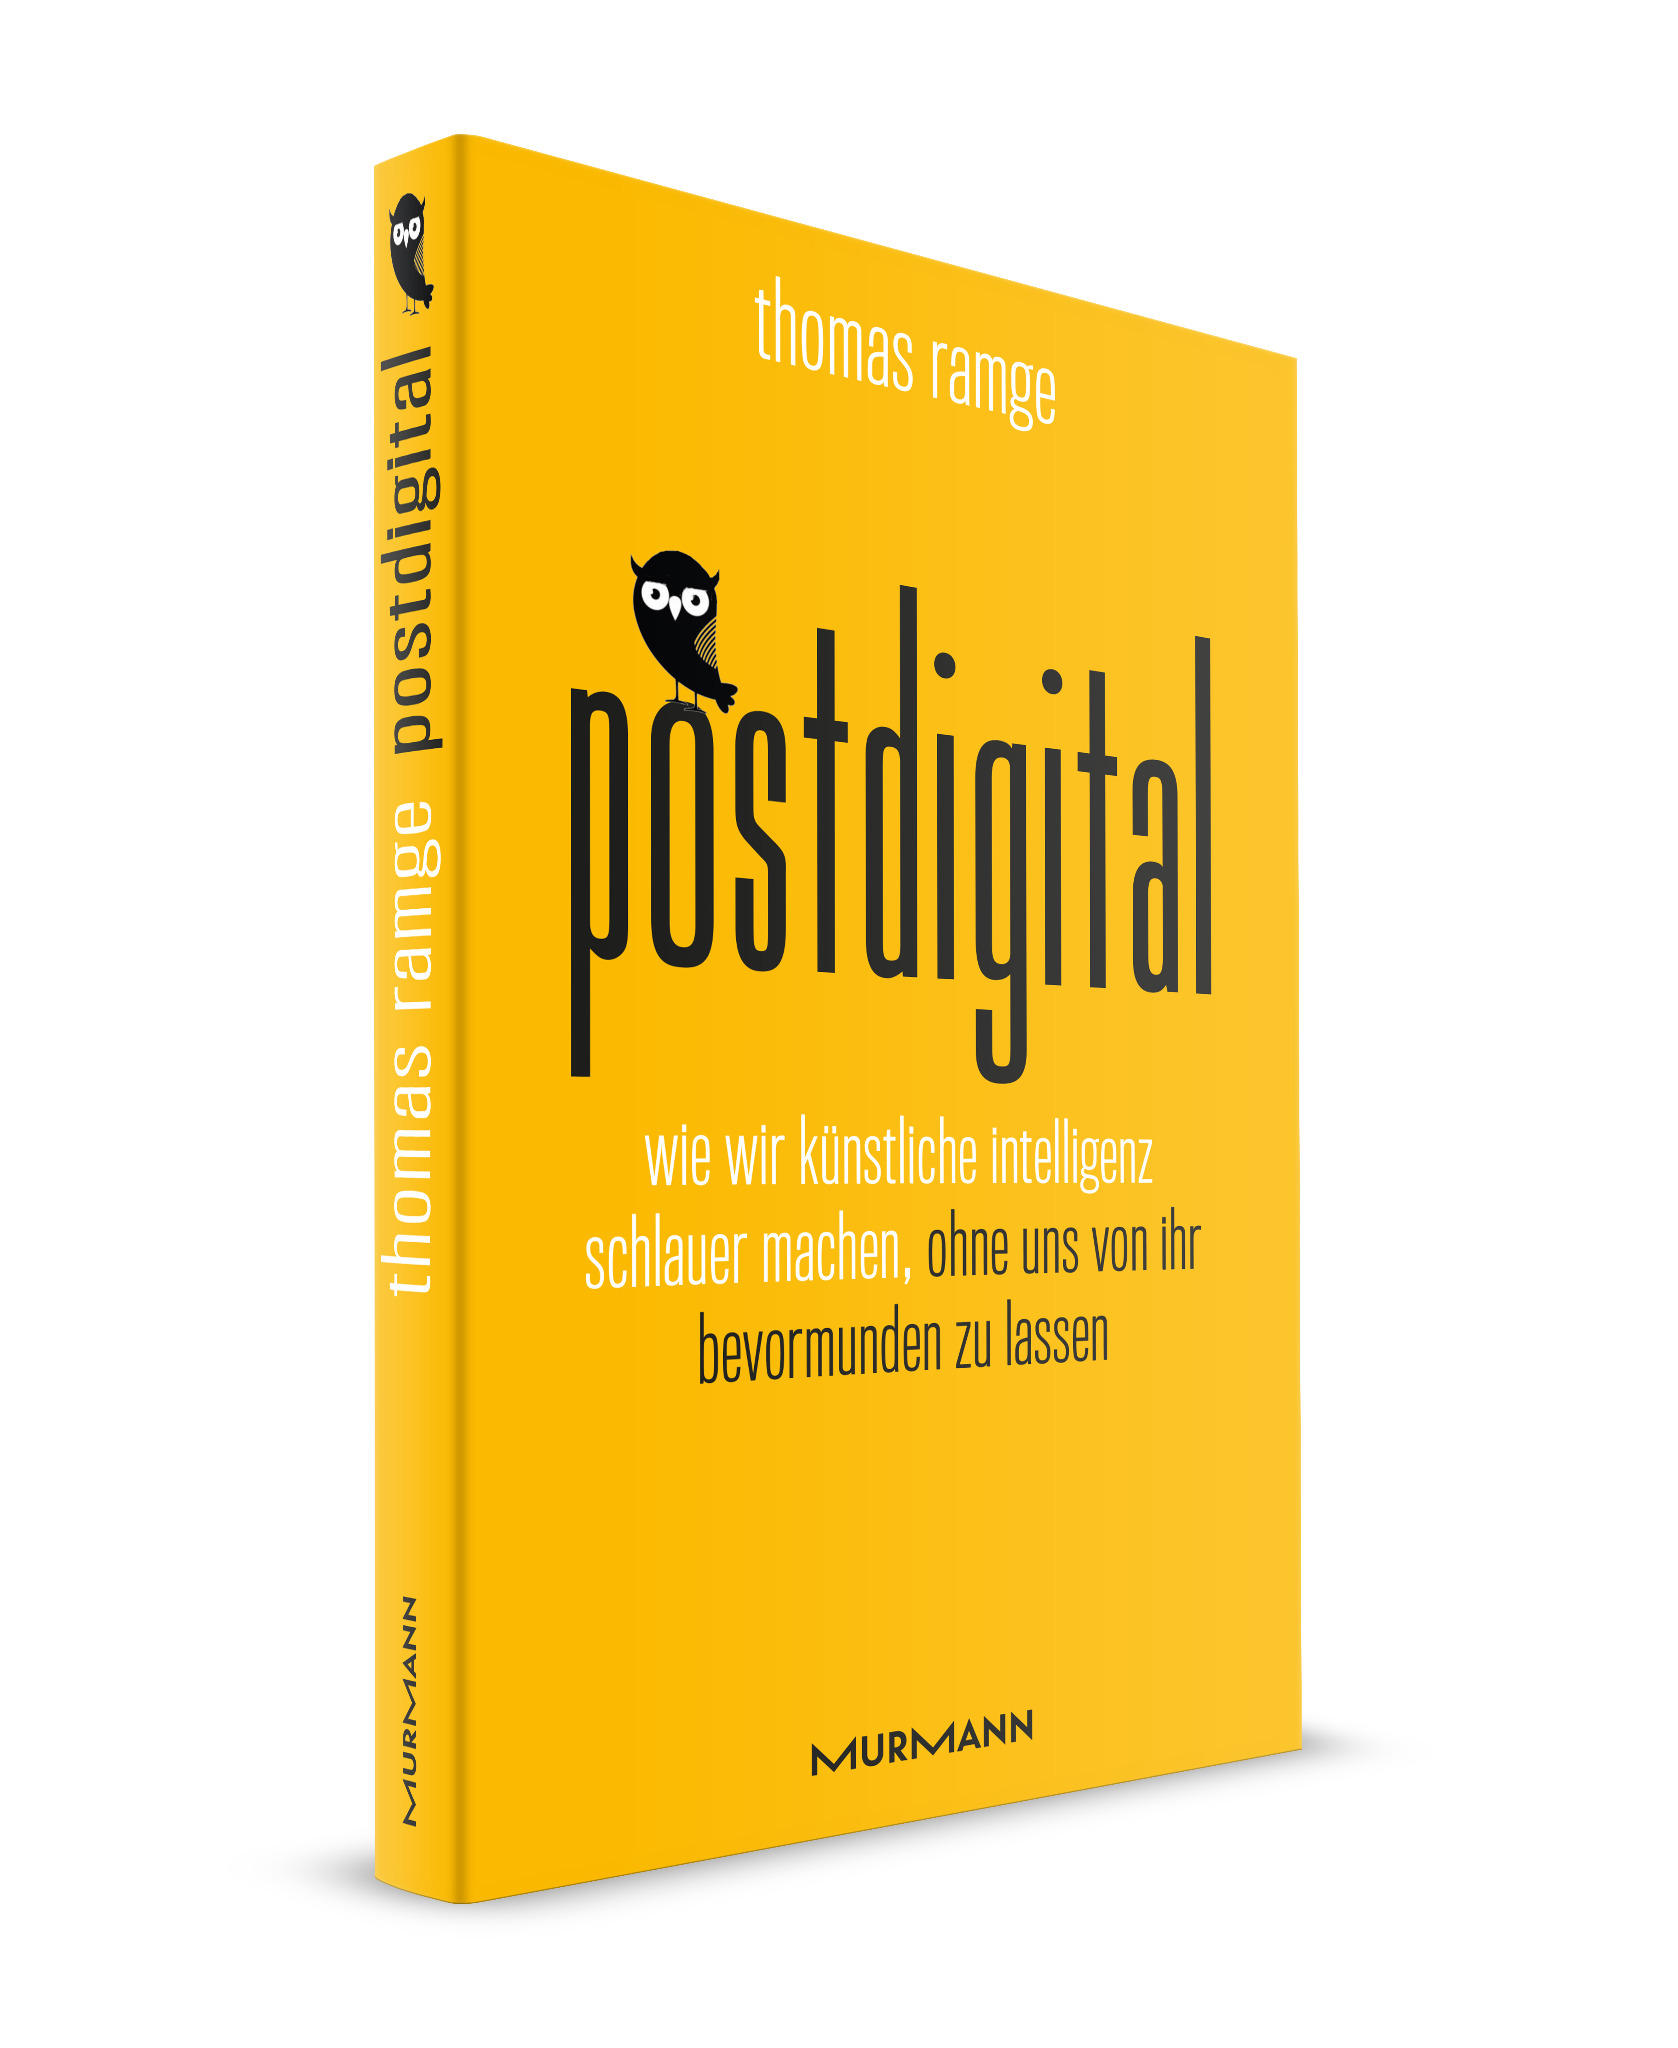 *postdigital / Thomas Ramge